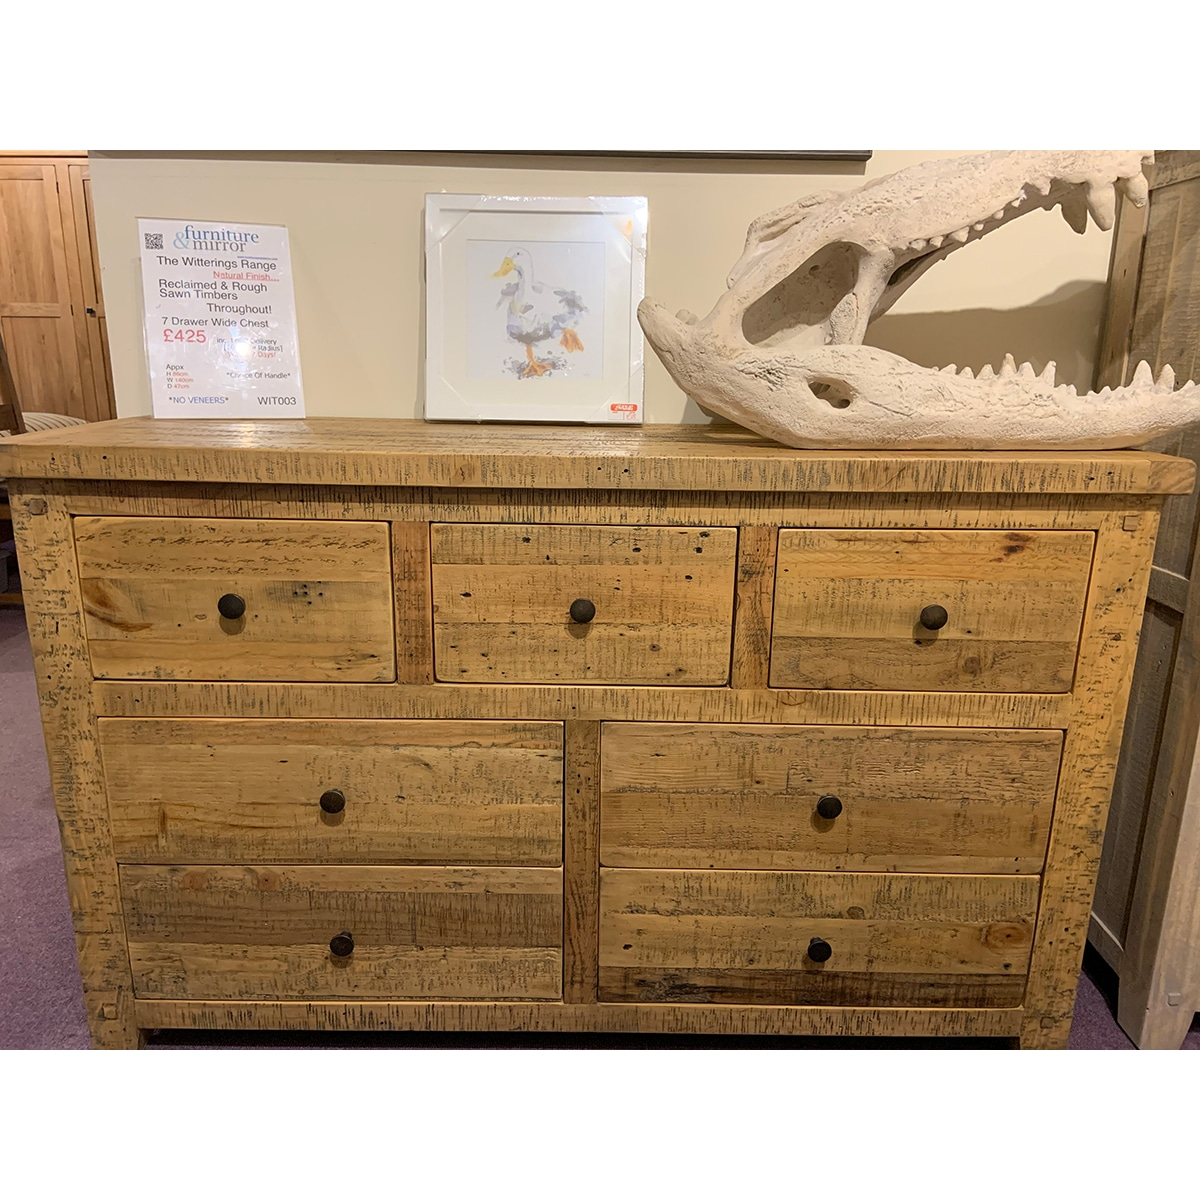 The Witterings 7 Drawer Wide Chest - WIT003N